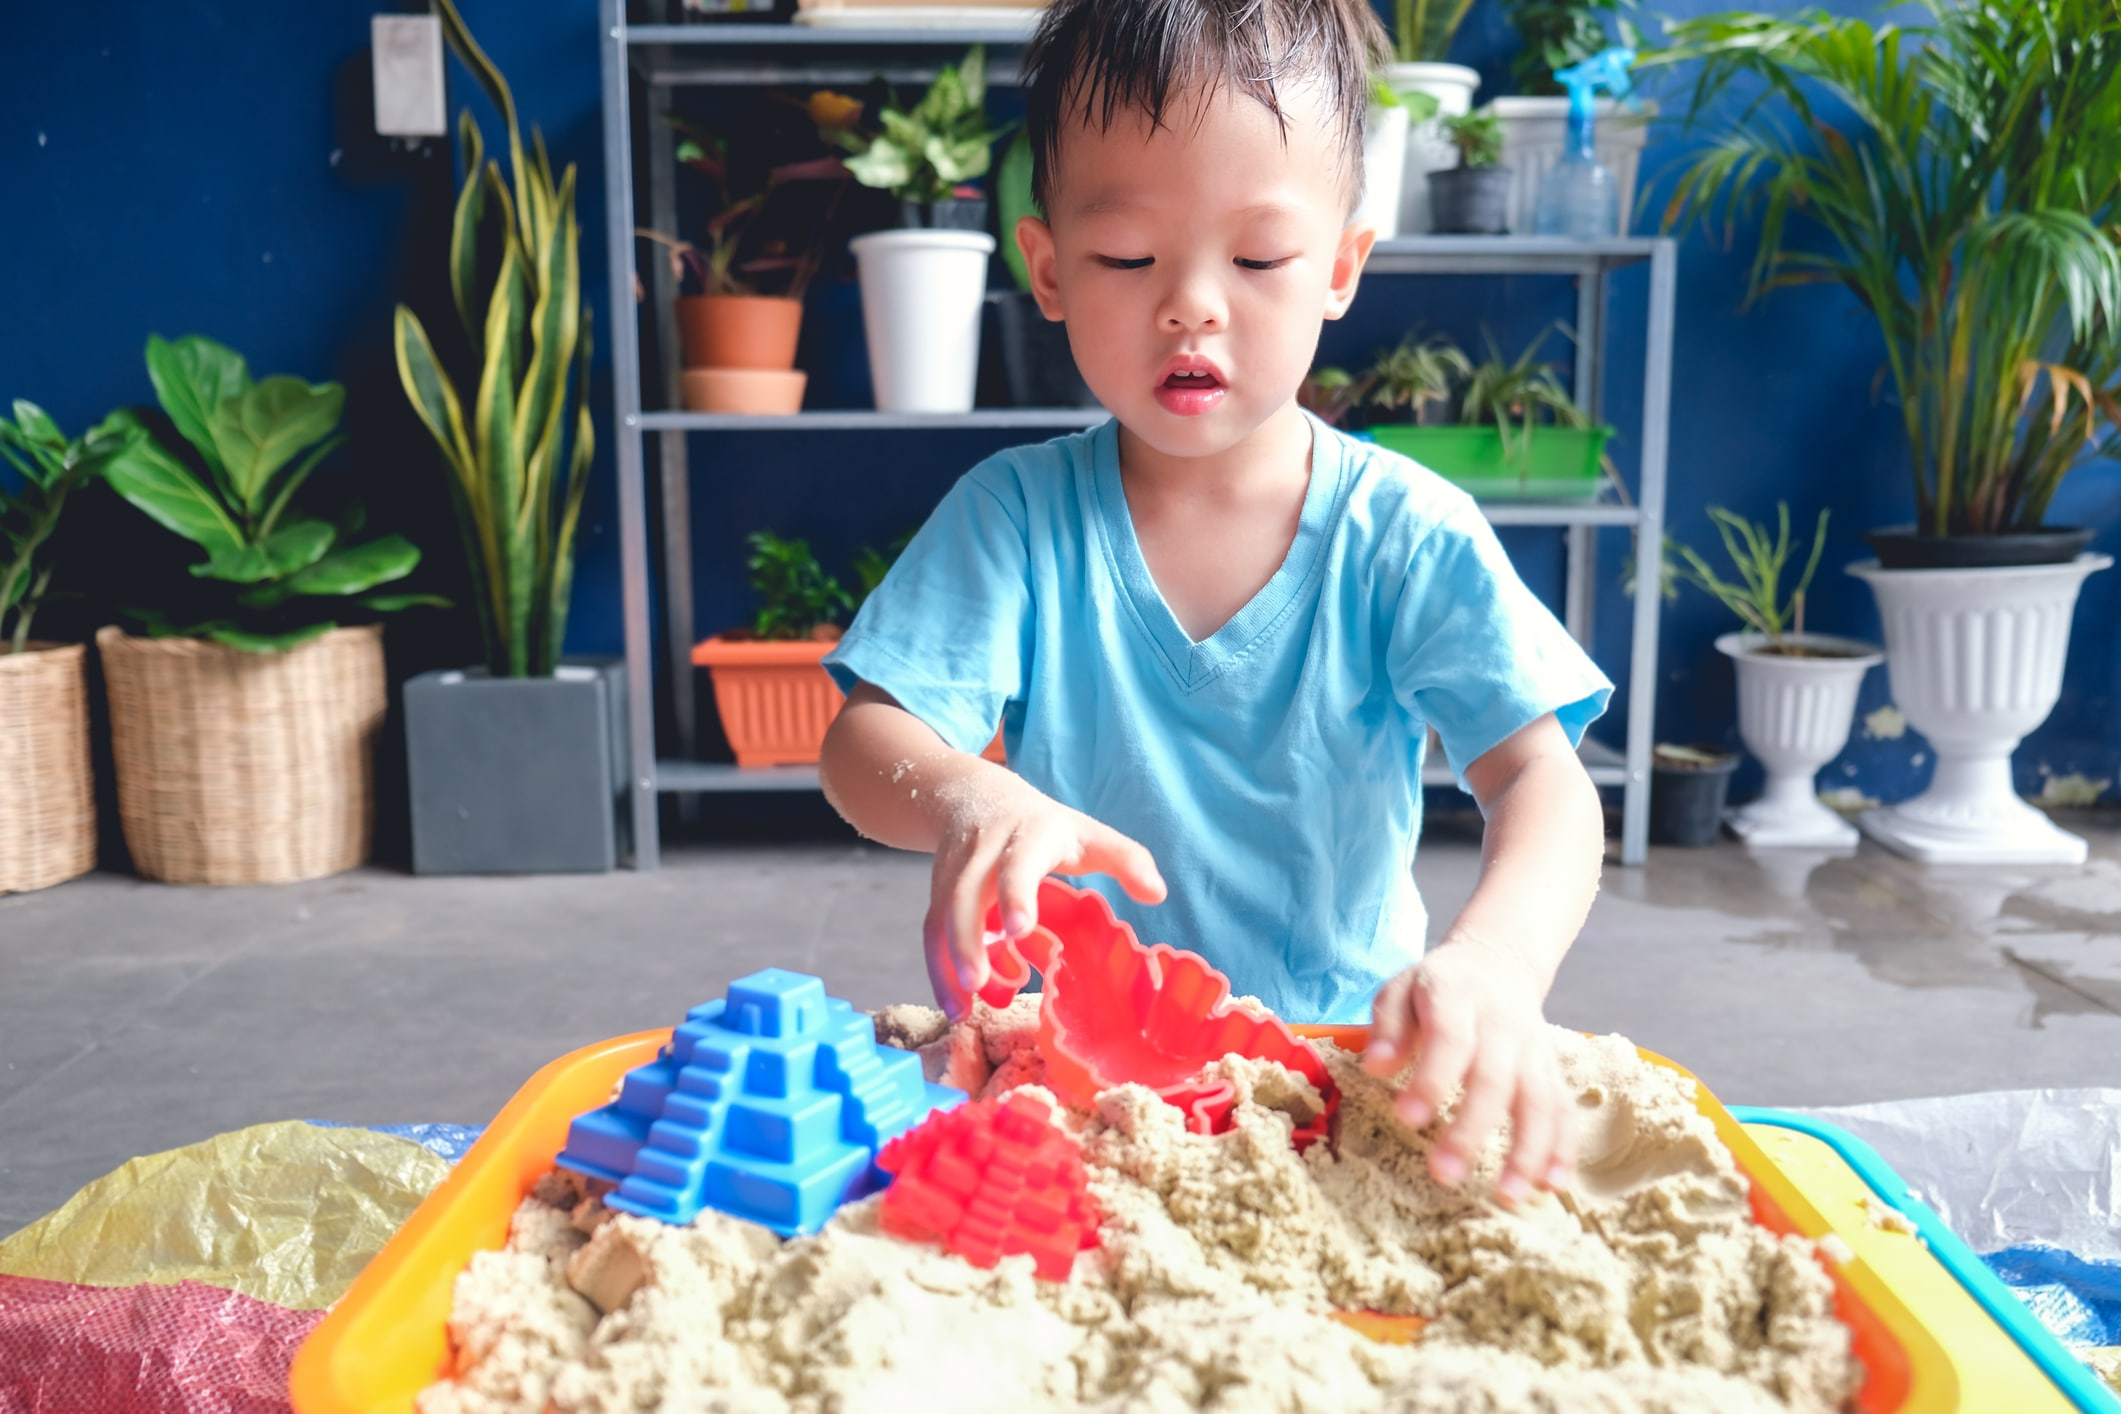 Young boy playing with sensory friendly toys